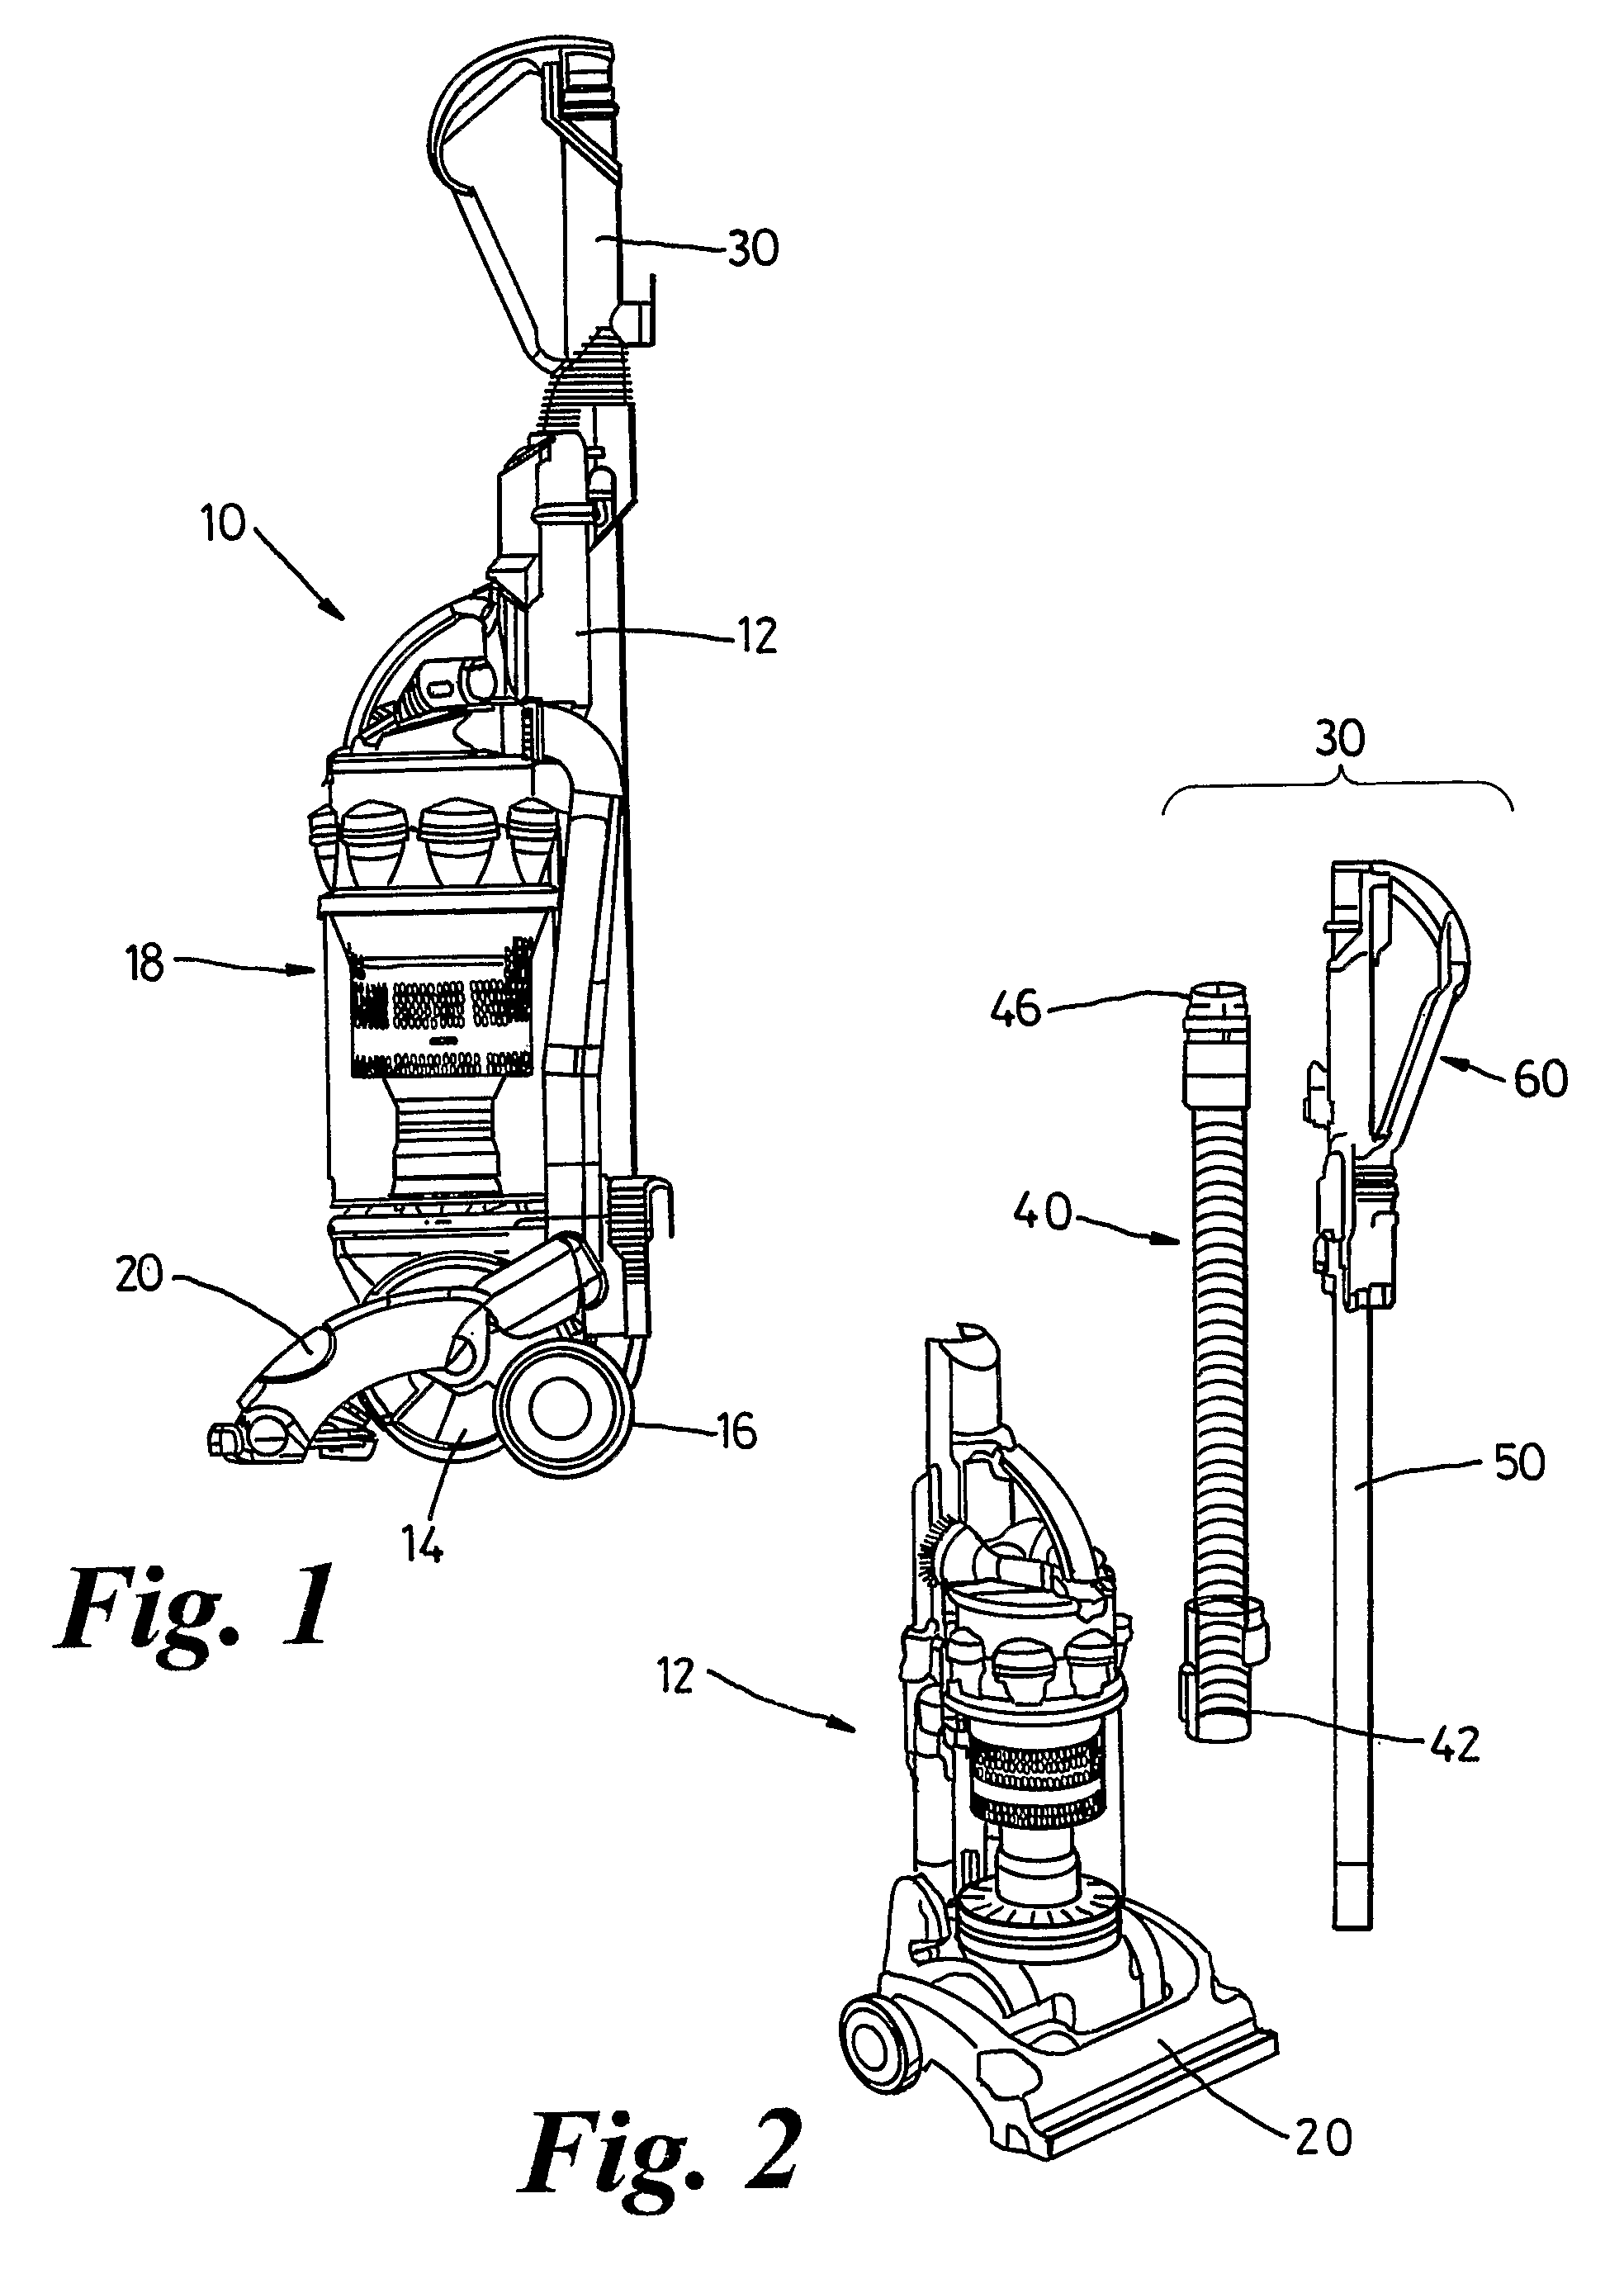 patent us8240003 - handle assembly for a cleaning appliance